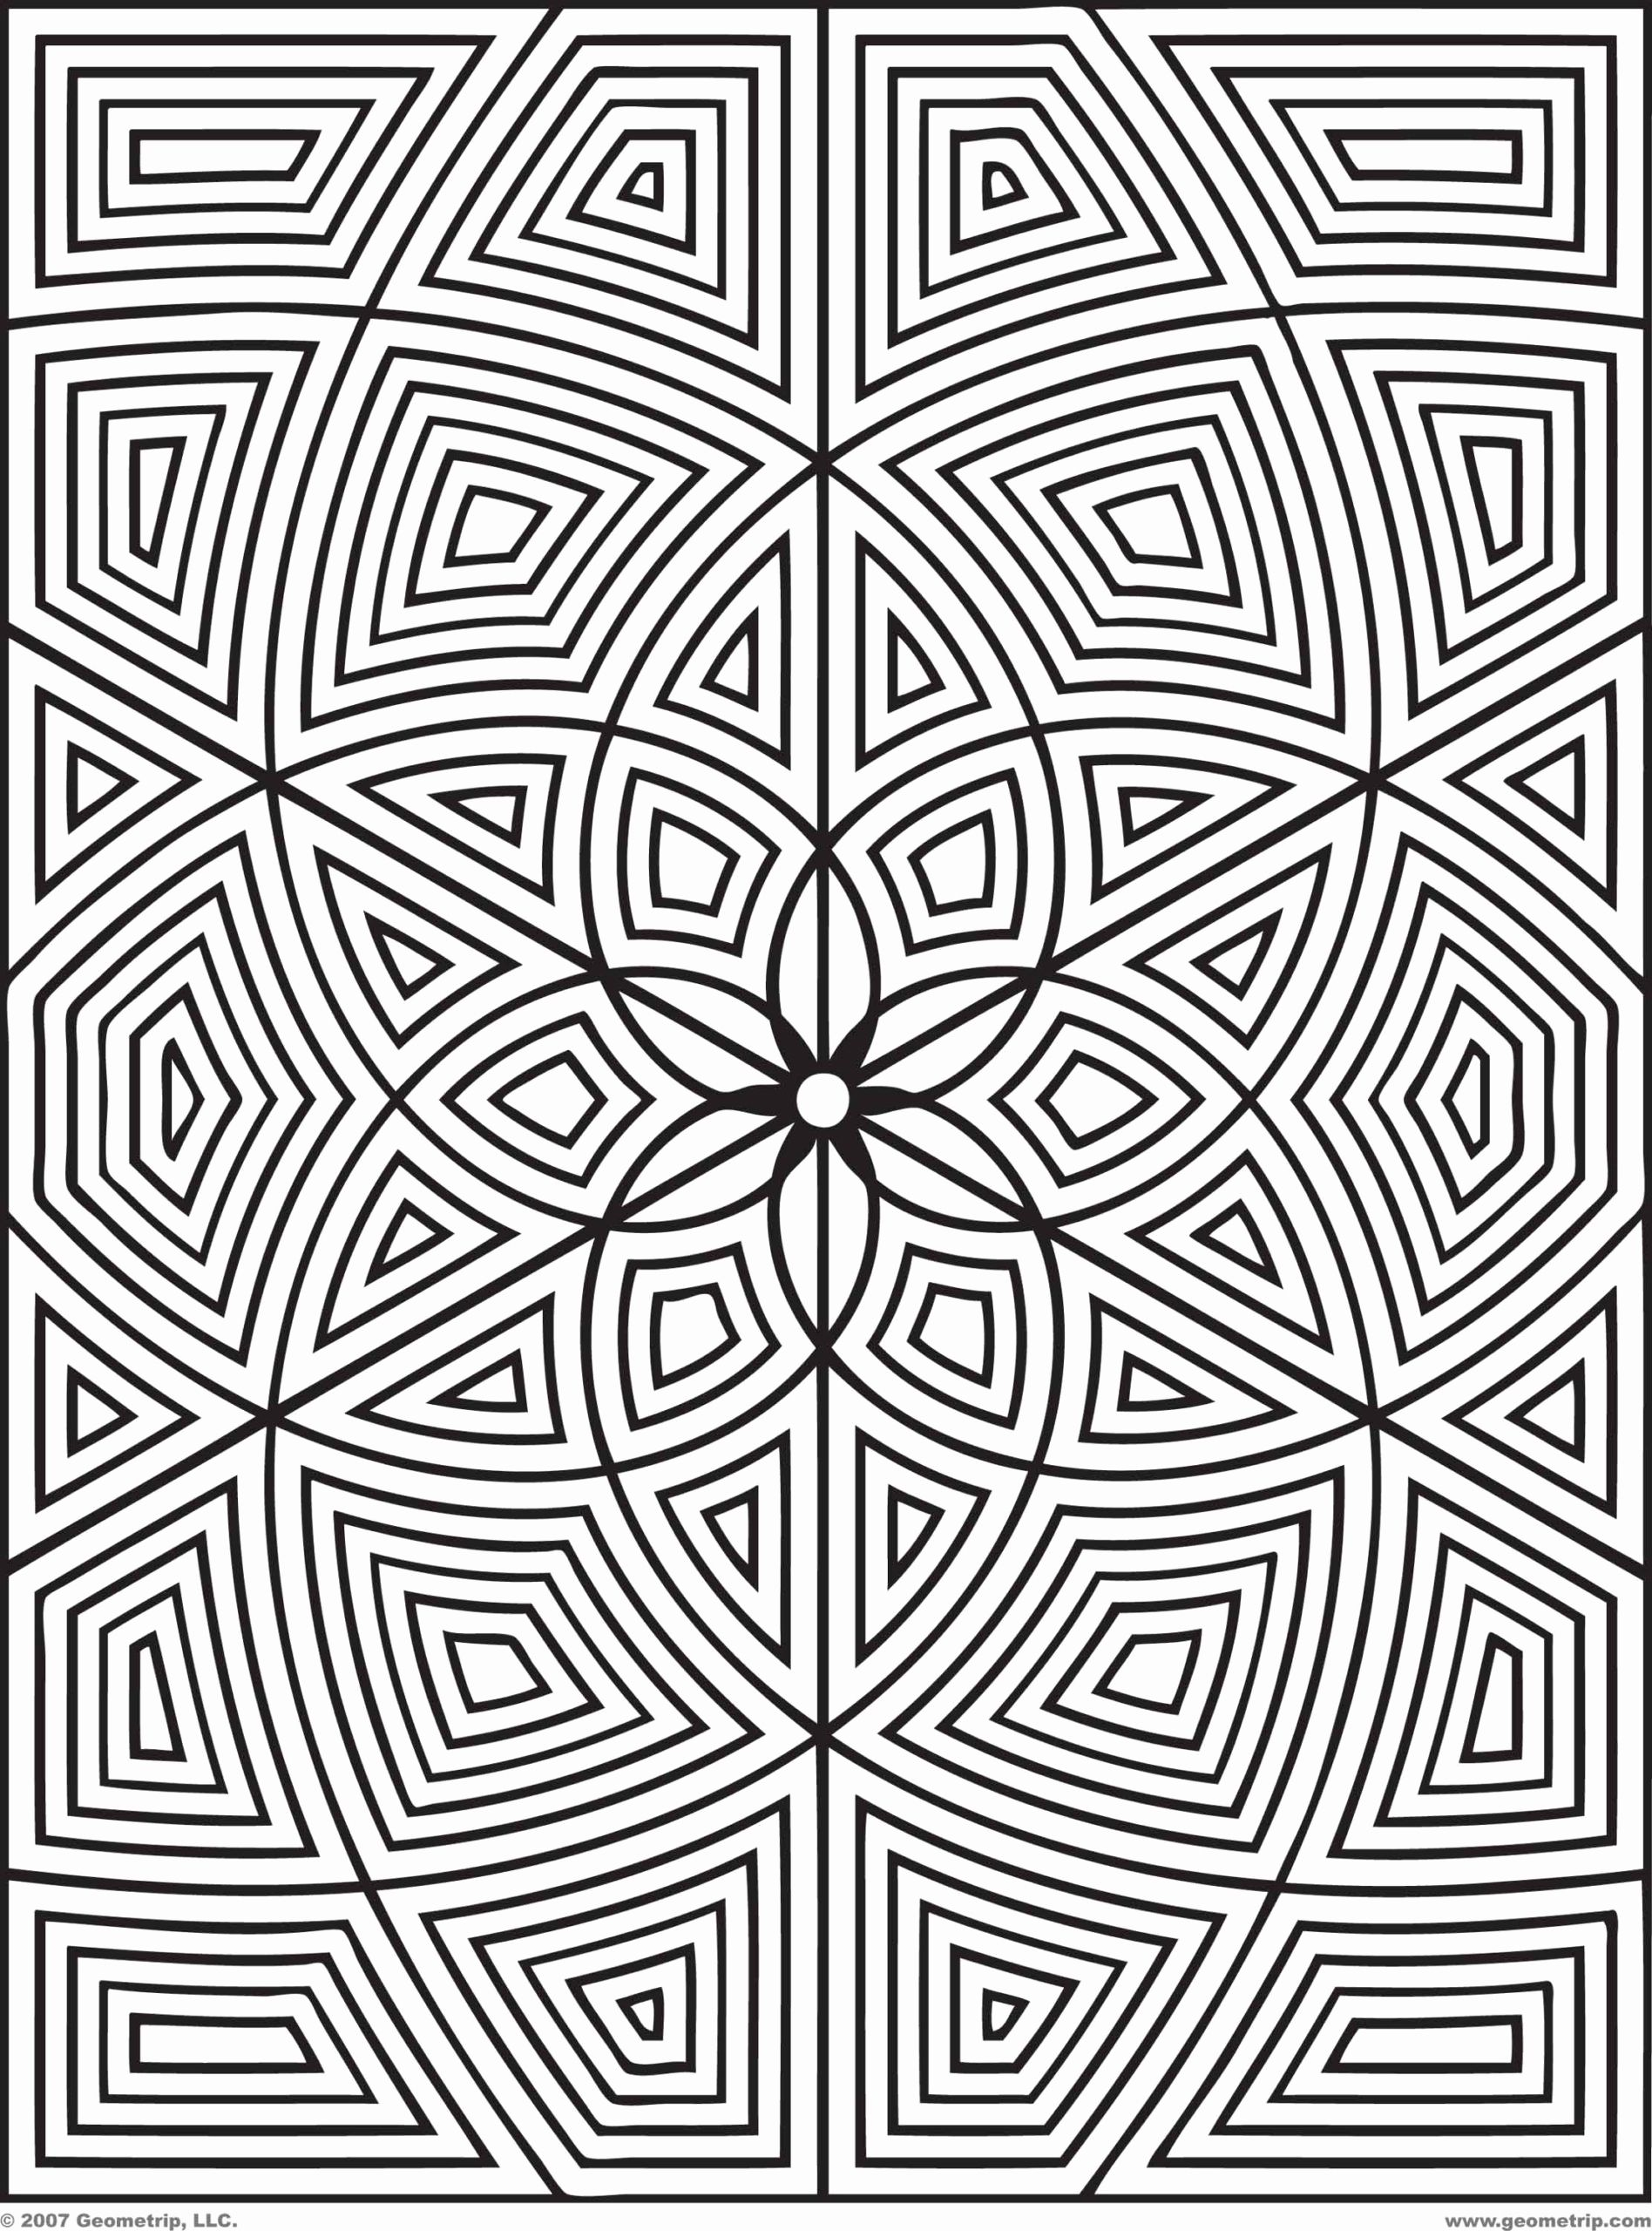 Geometric Patterns Coloring Pages For Kids Animal In 2020 Geometric Coloring Pages Pattern Coloring Pages Abstract Coloring Pages